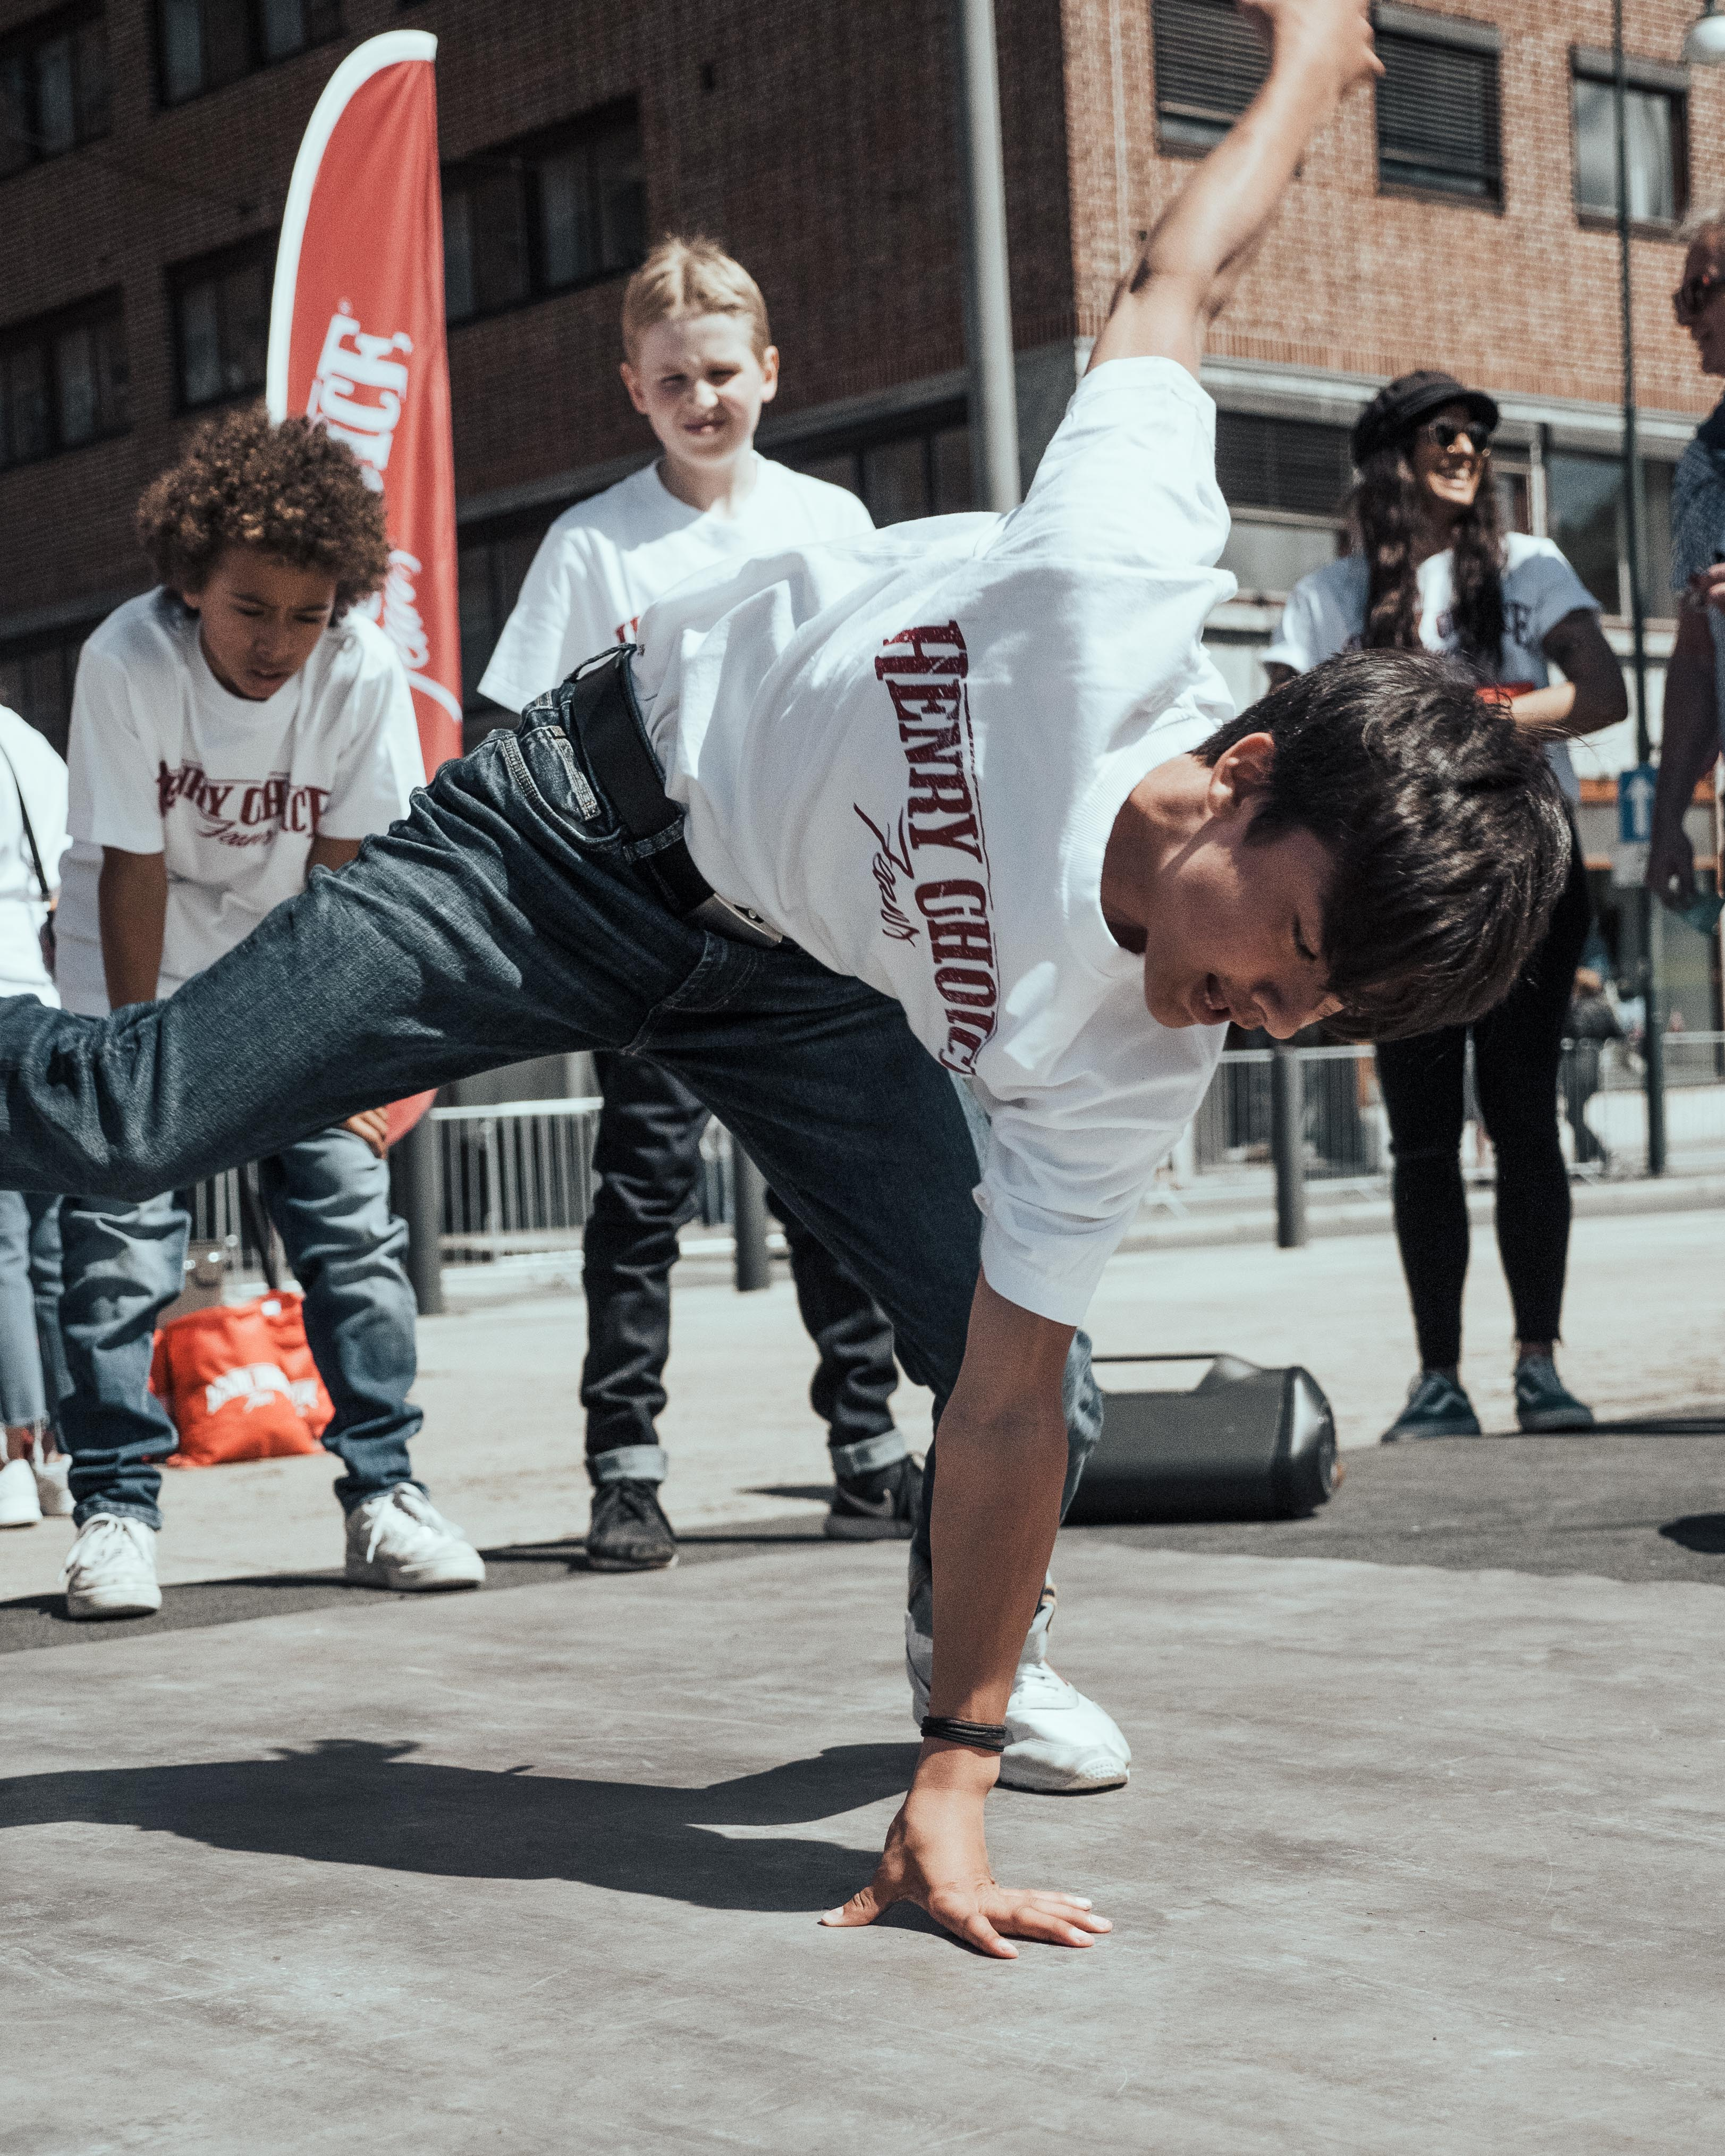 Henry Choice, VG-Lista 2019 - young boy breakdancing